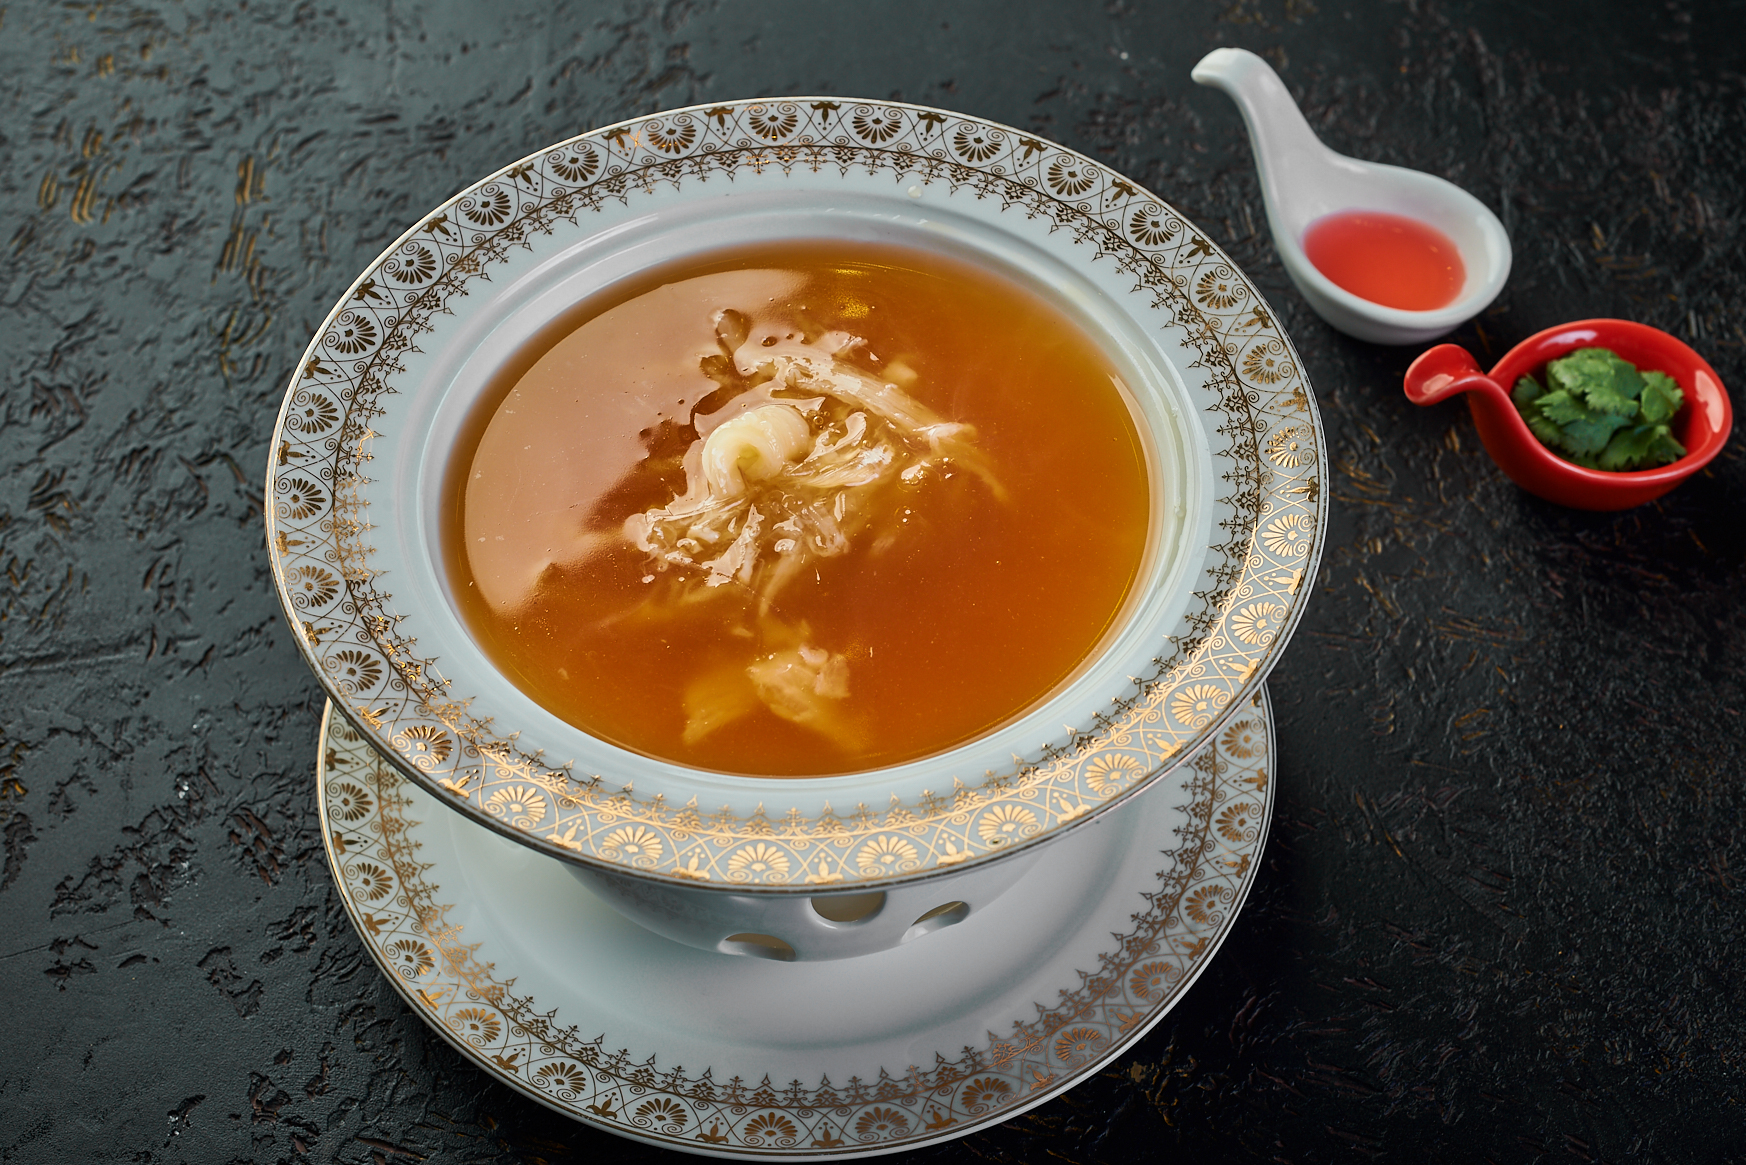 Gin Gow Imperial Shark Fin Soup 2800₽